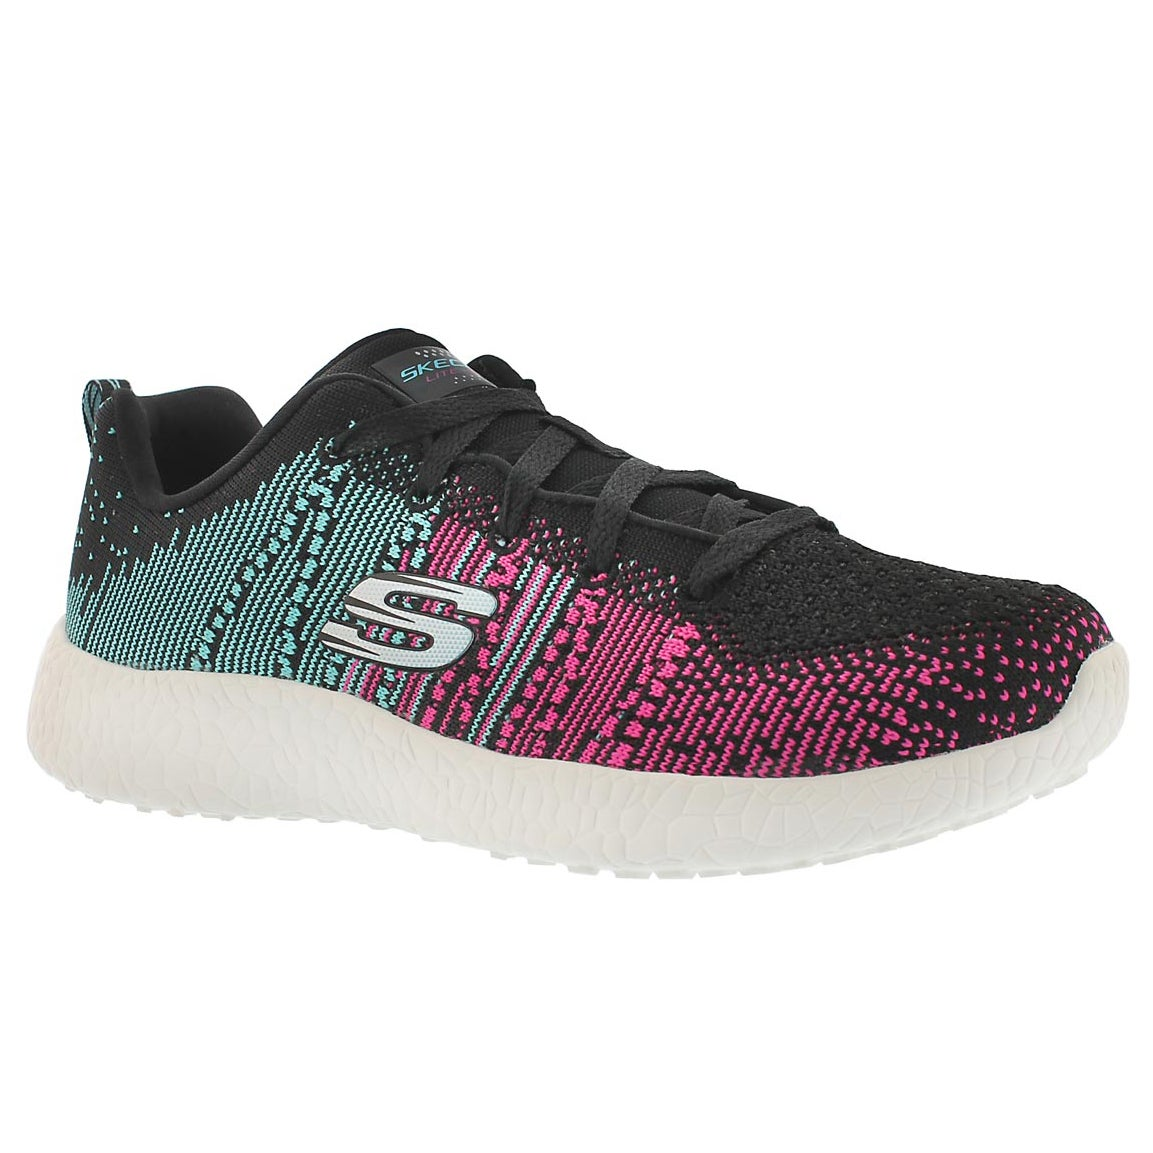 Women's ELLIPSE black/multi lace up running shoes